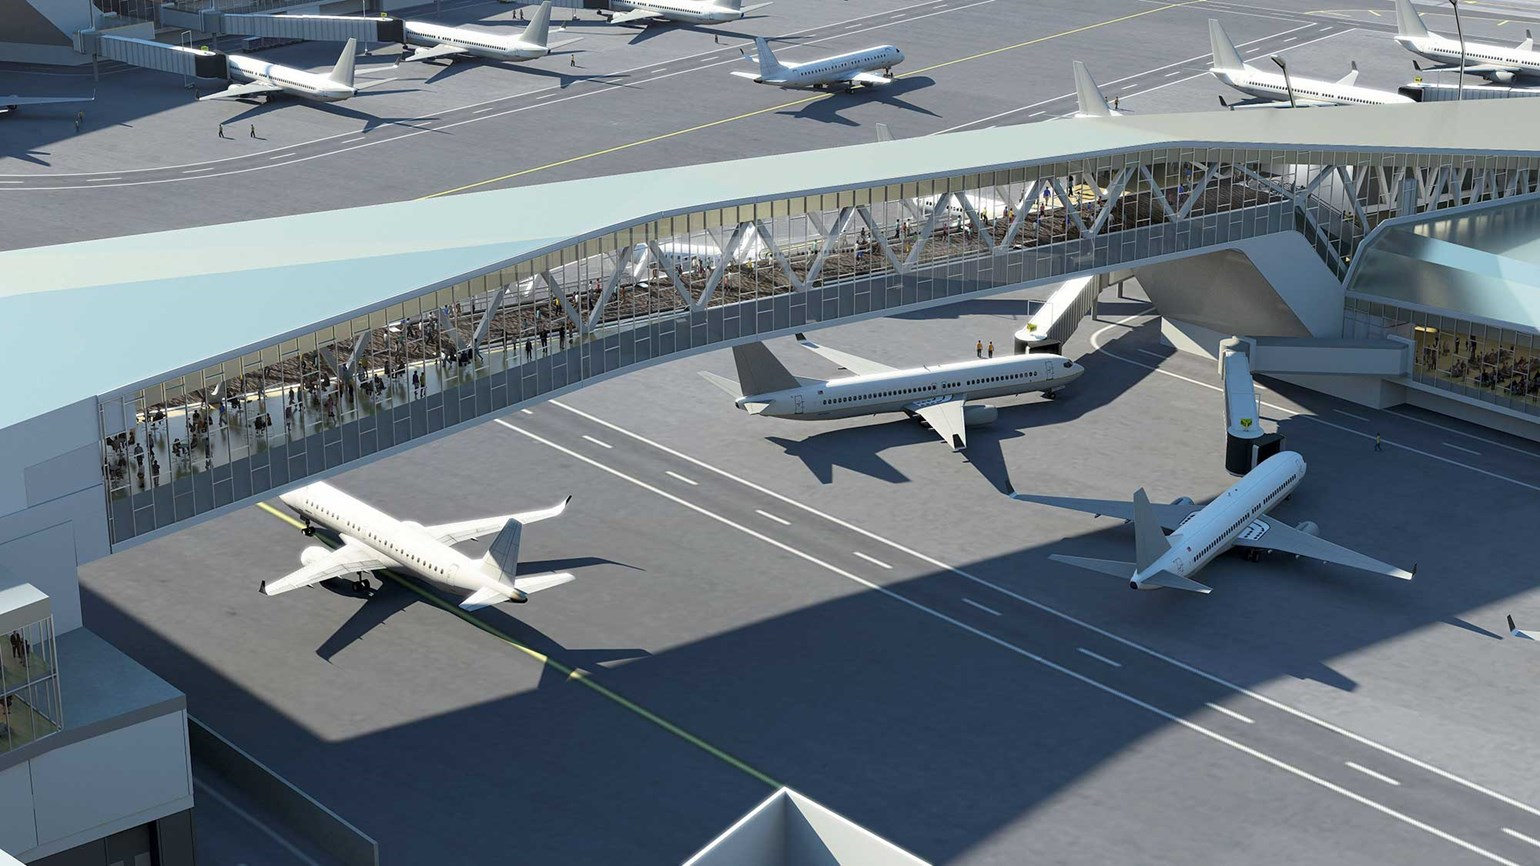 Analysts skeptical as politicians tout LaGuardia overhaul